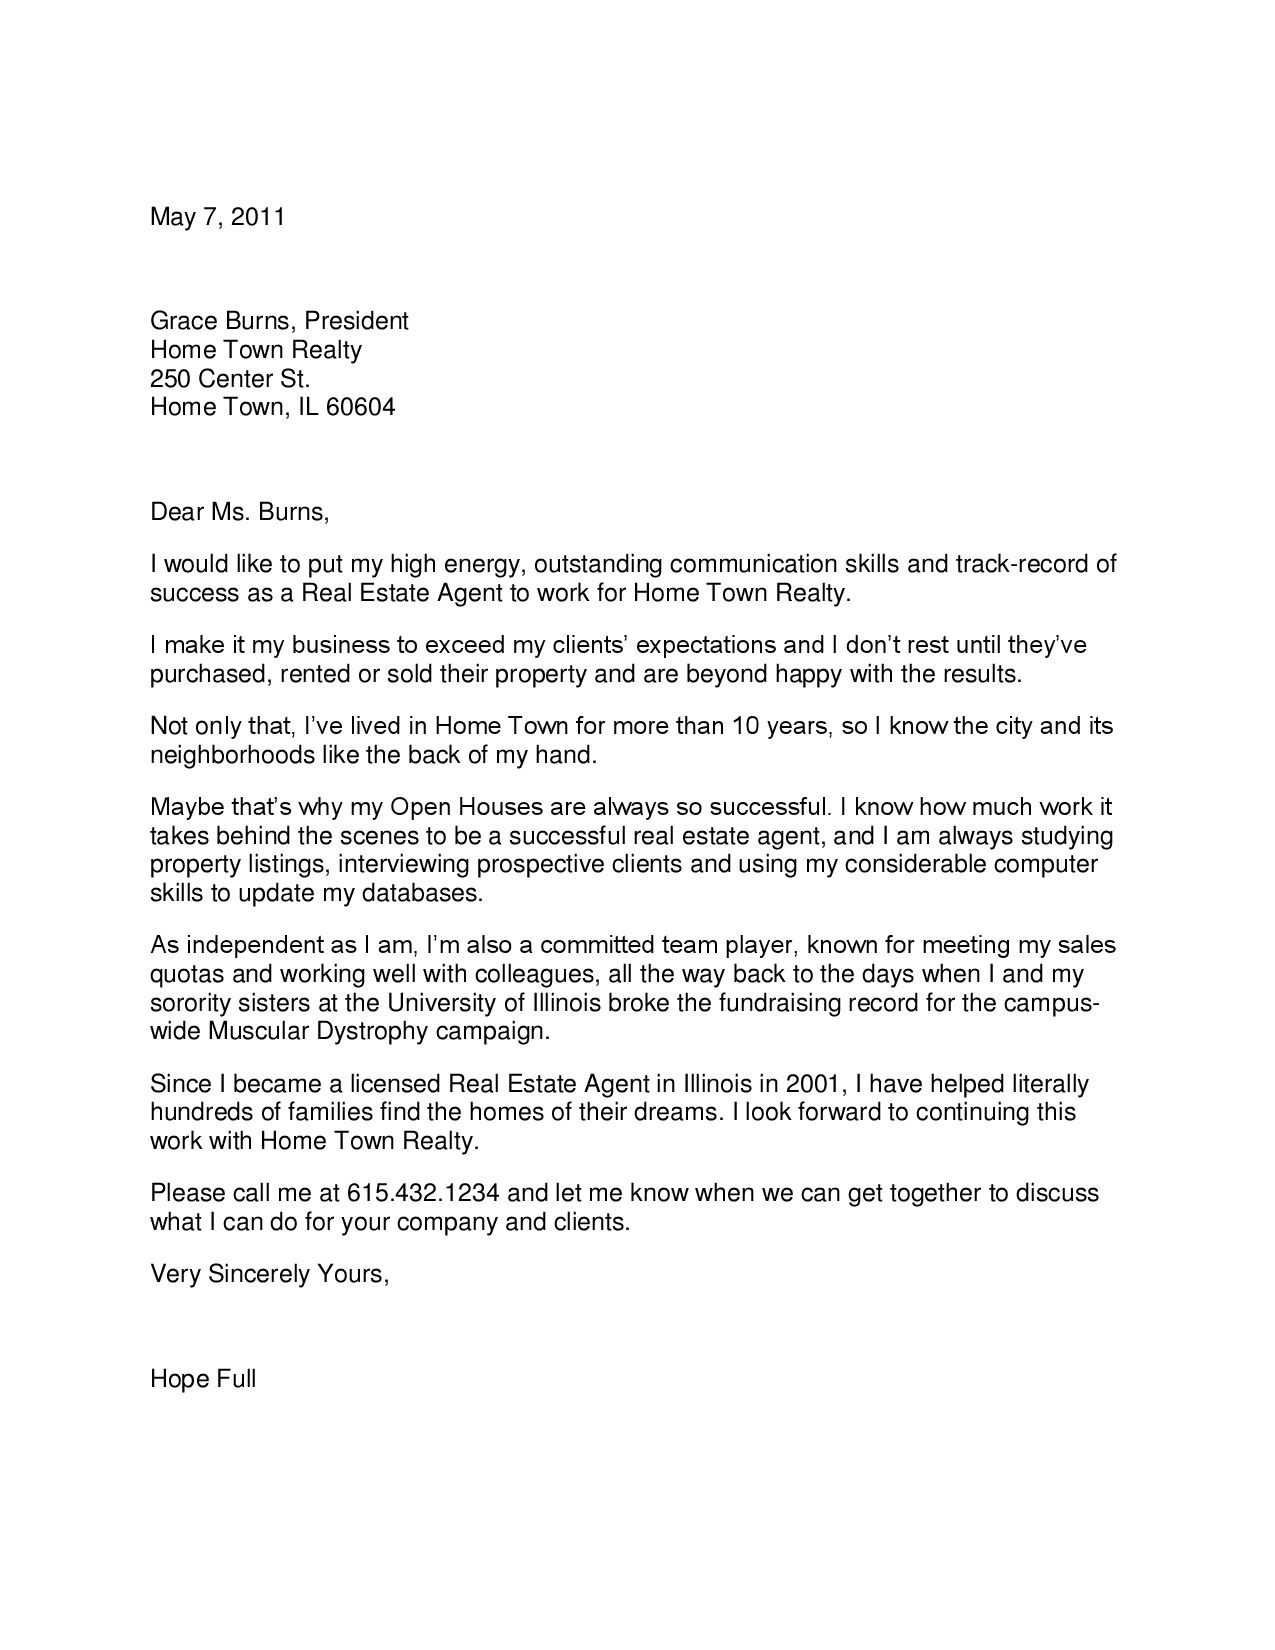 Example Of Cover Letter New Zealand - 200+ Cover Letter ...